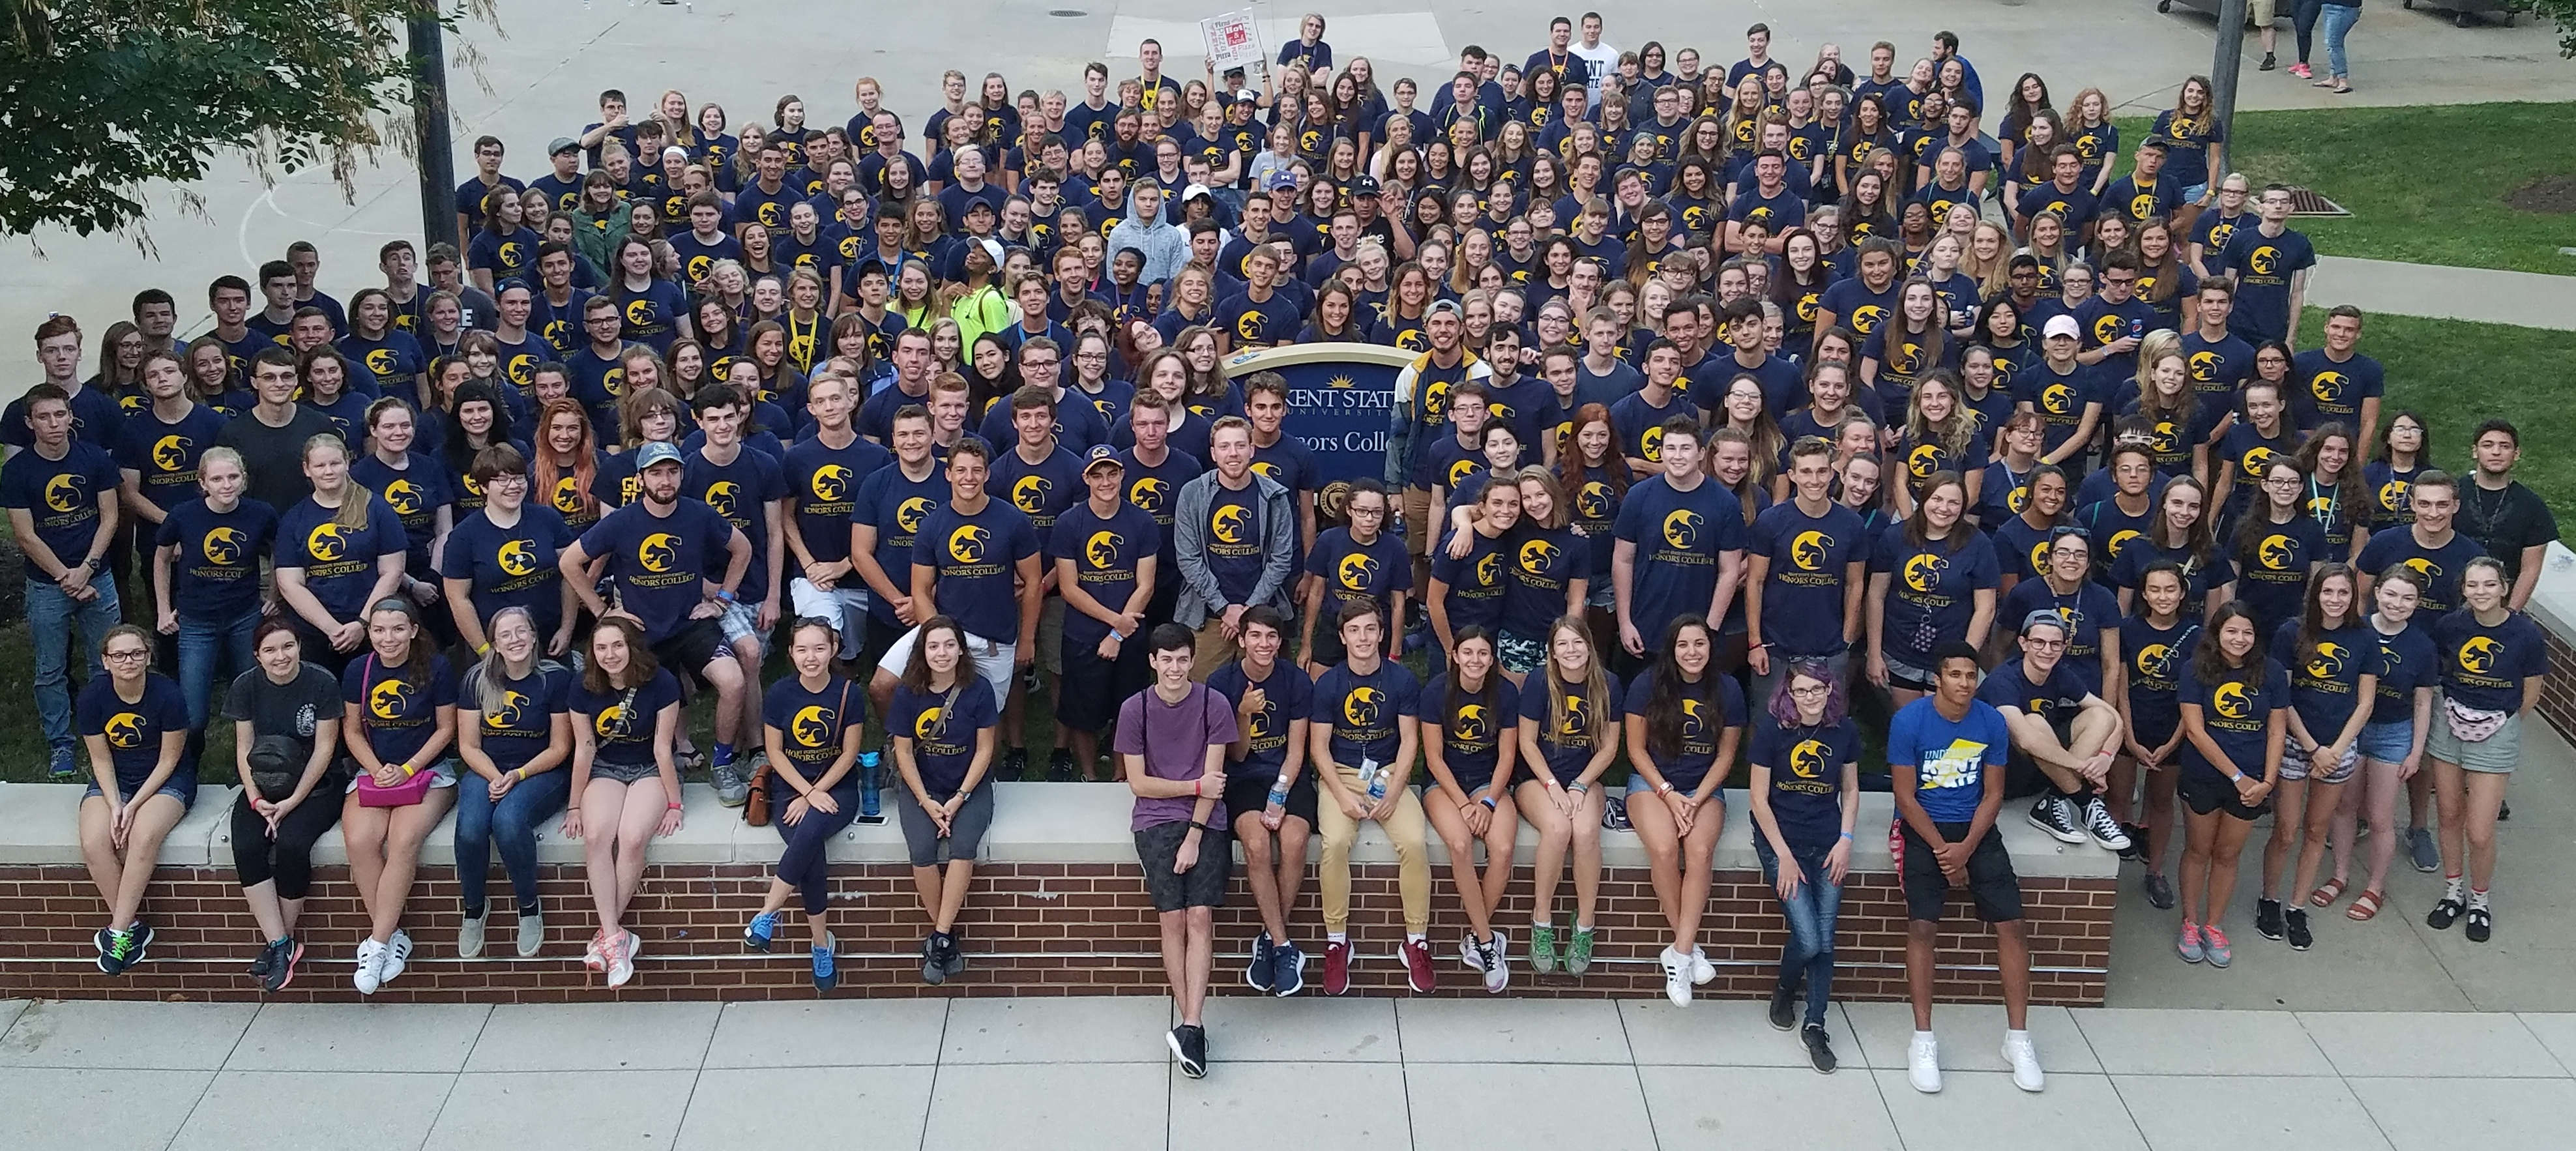 Class of 2021 Group Photo from 2017